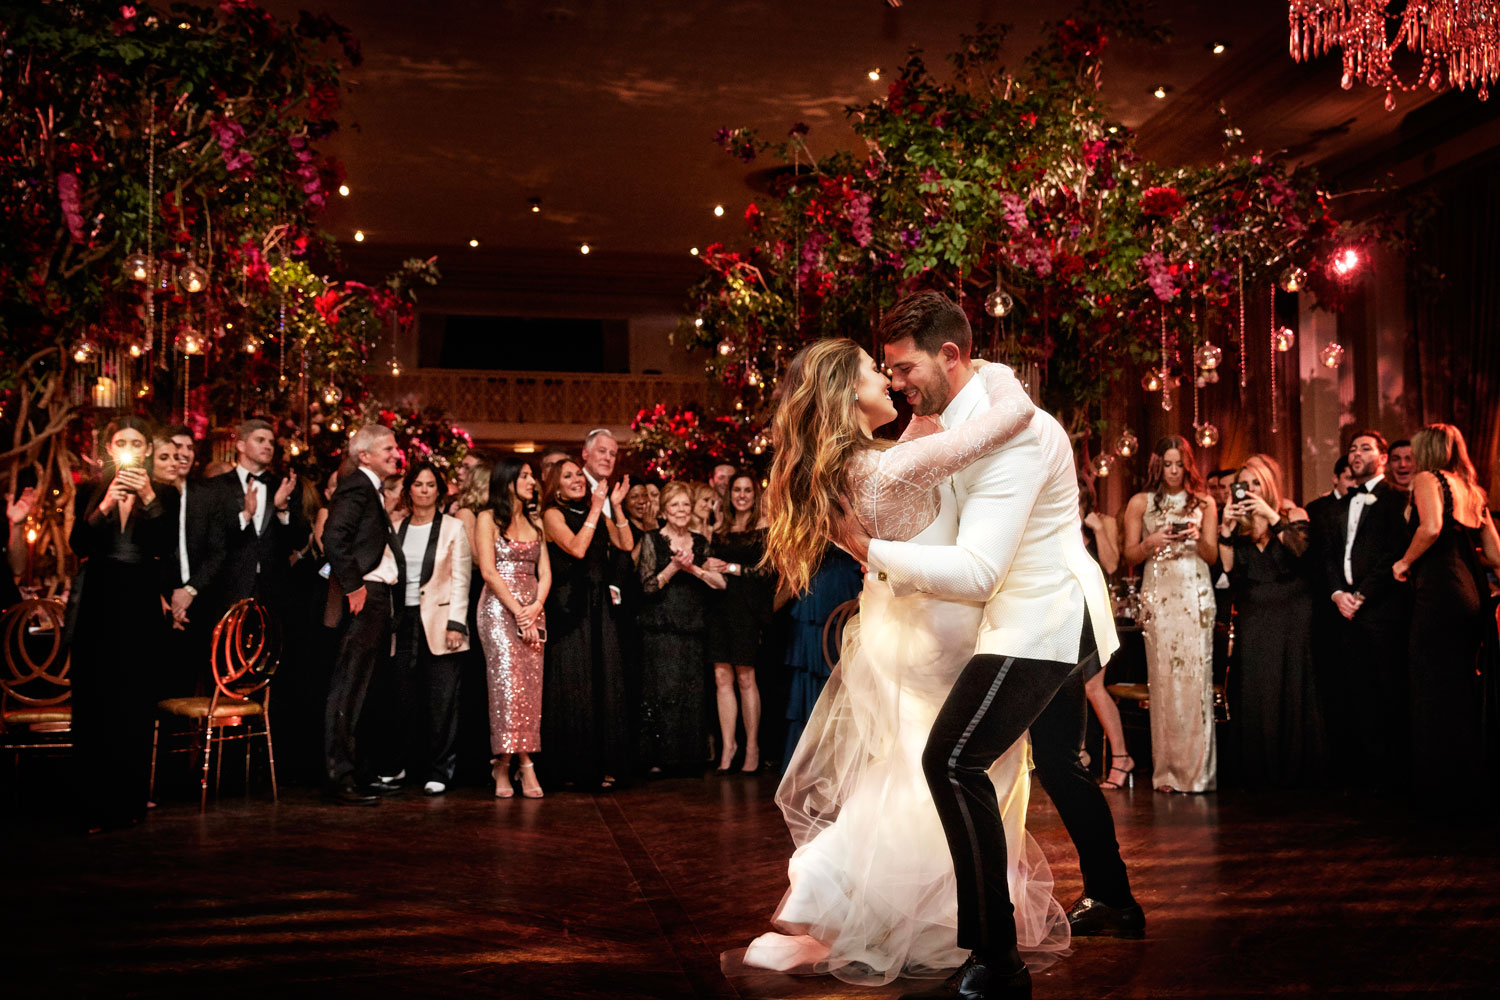 ed sheeran first dance songs, ed sheeran reception dancing songs, ed sheeran songs to walk down the aisle to